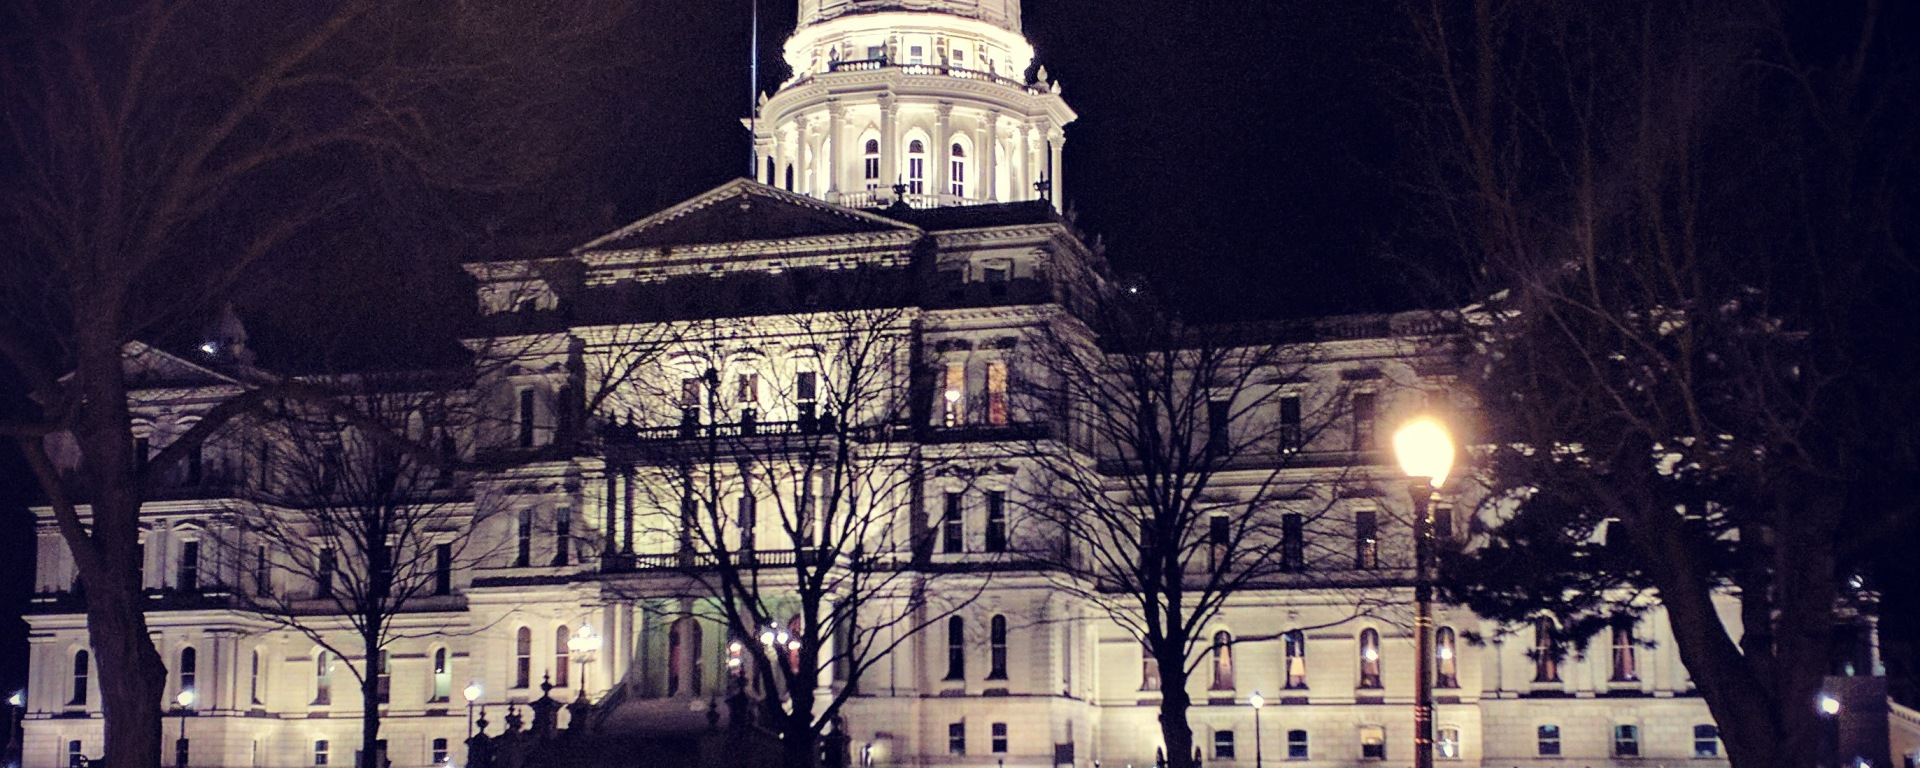 Exterior view of the Michigan Capitol Building illuminated at night.